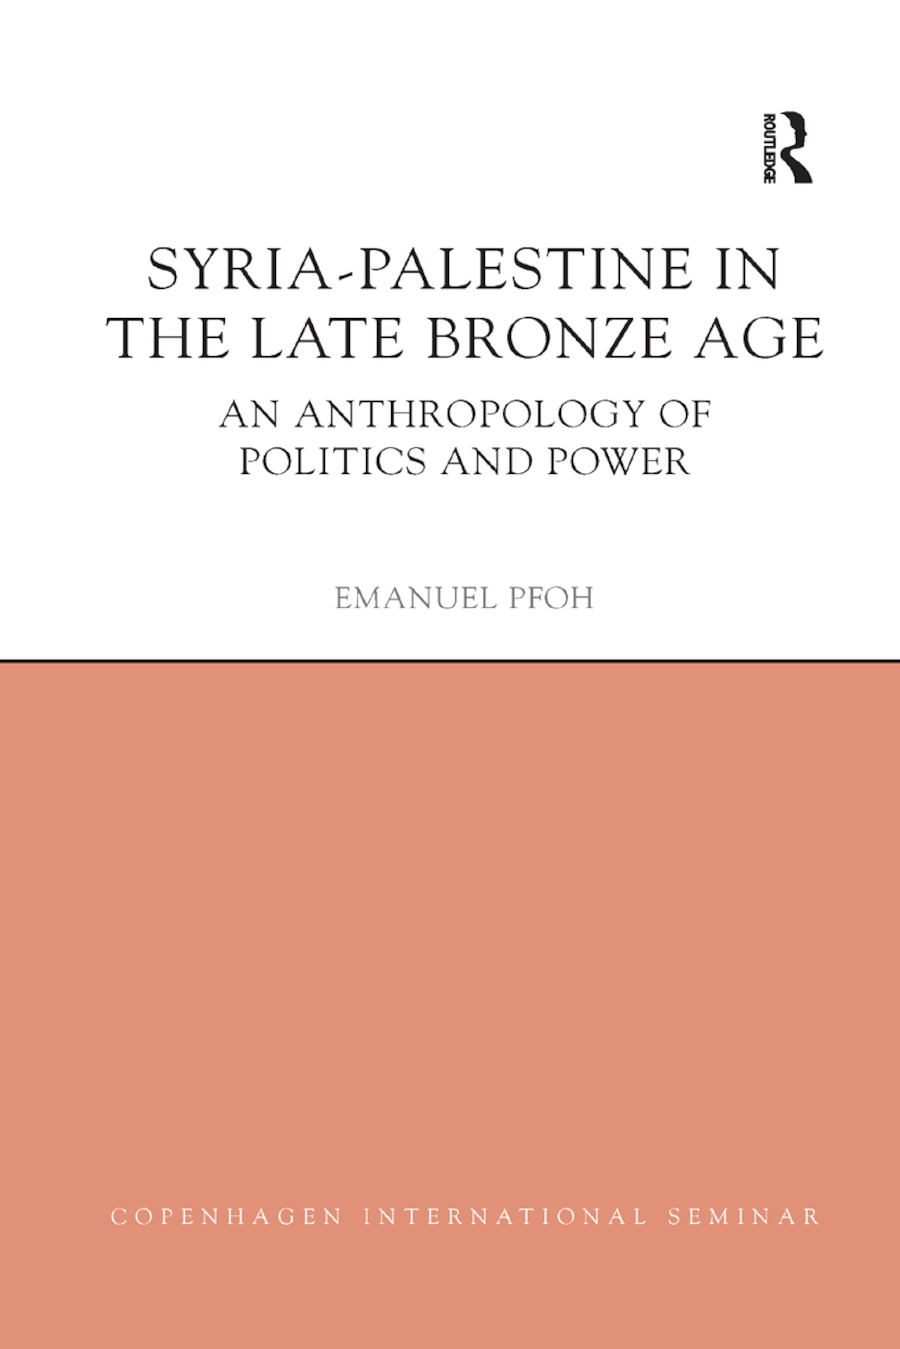 Syria-Palestine in The Late Bronze Age